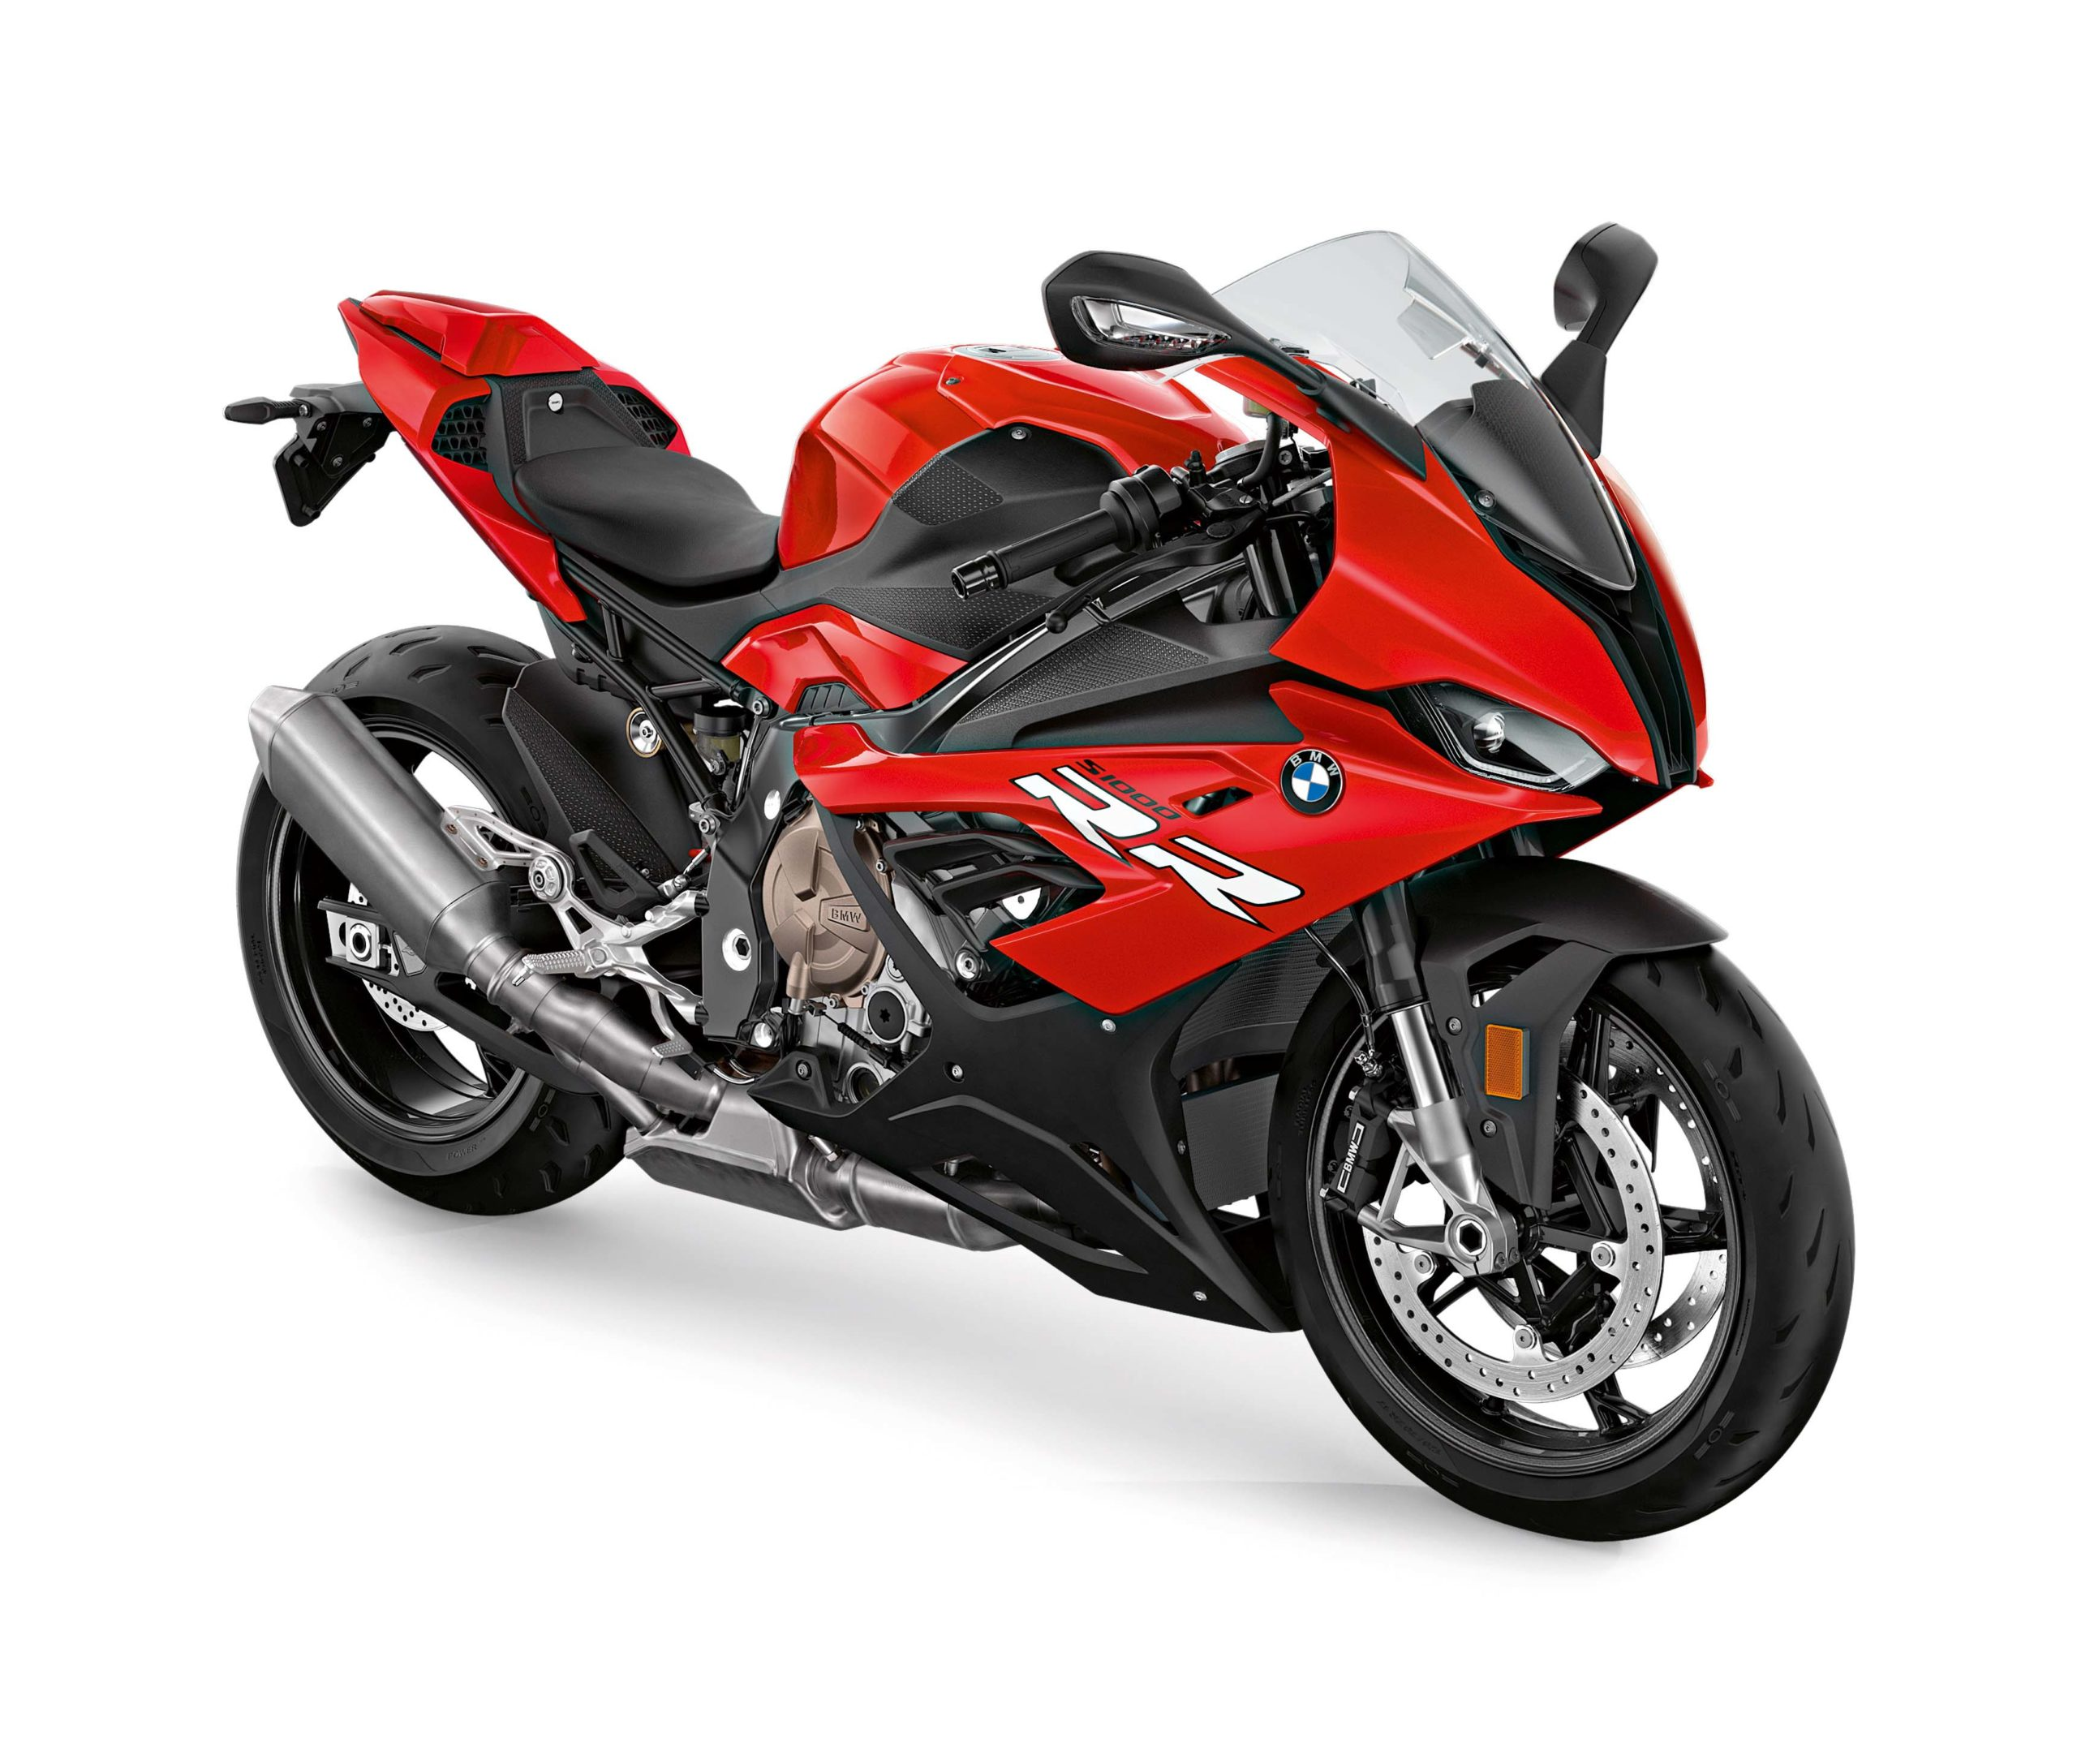 The s1000rr carbon fiber will make a big difference to your vehicle.